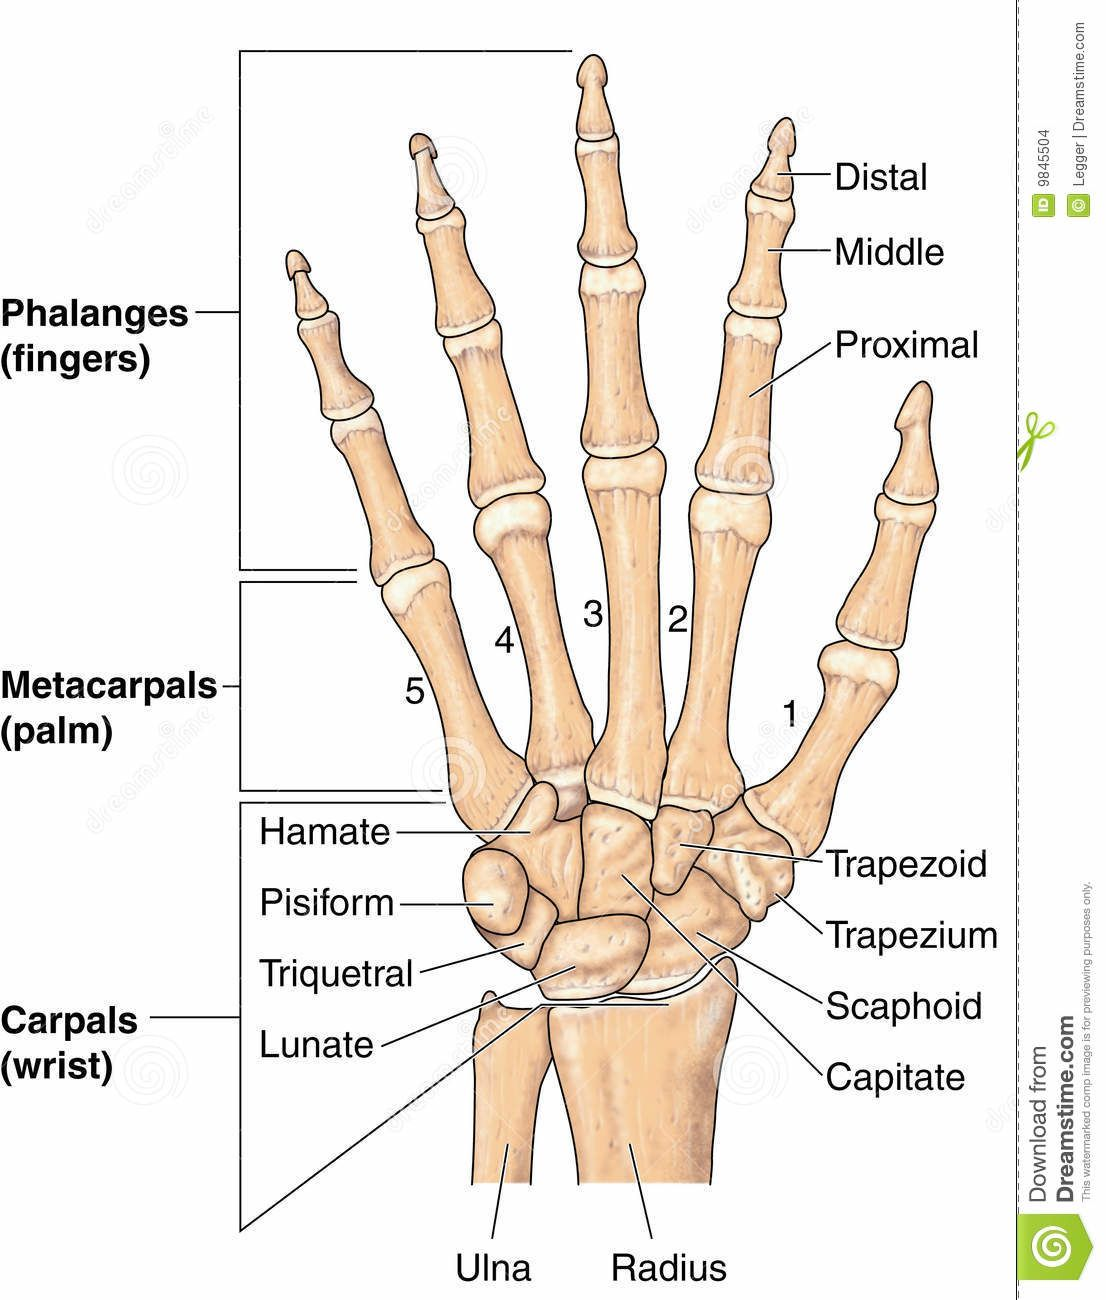 Bones of the hand and wrist. | For Lily | Pinterest | Bones and Hands